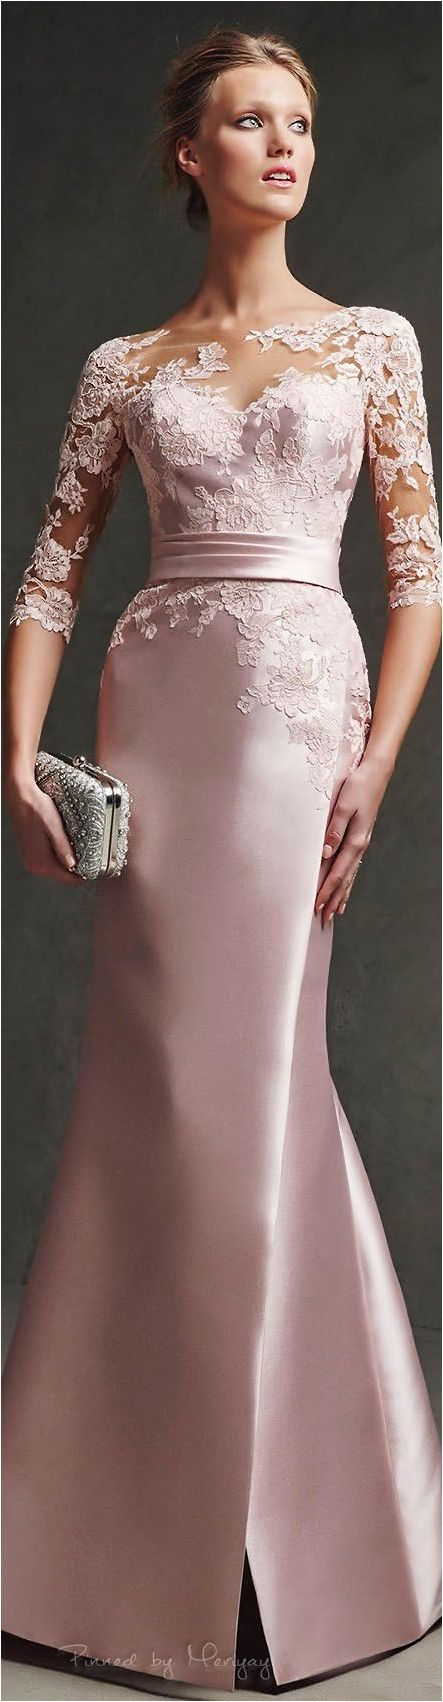 Best Mother Of Groom Dresses Ideas Only On Pinterest Brides